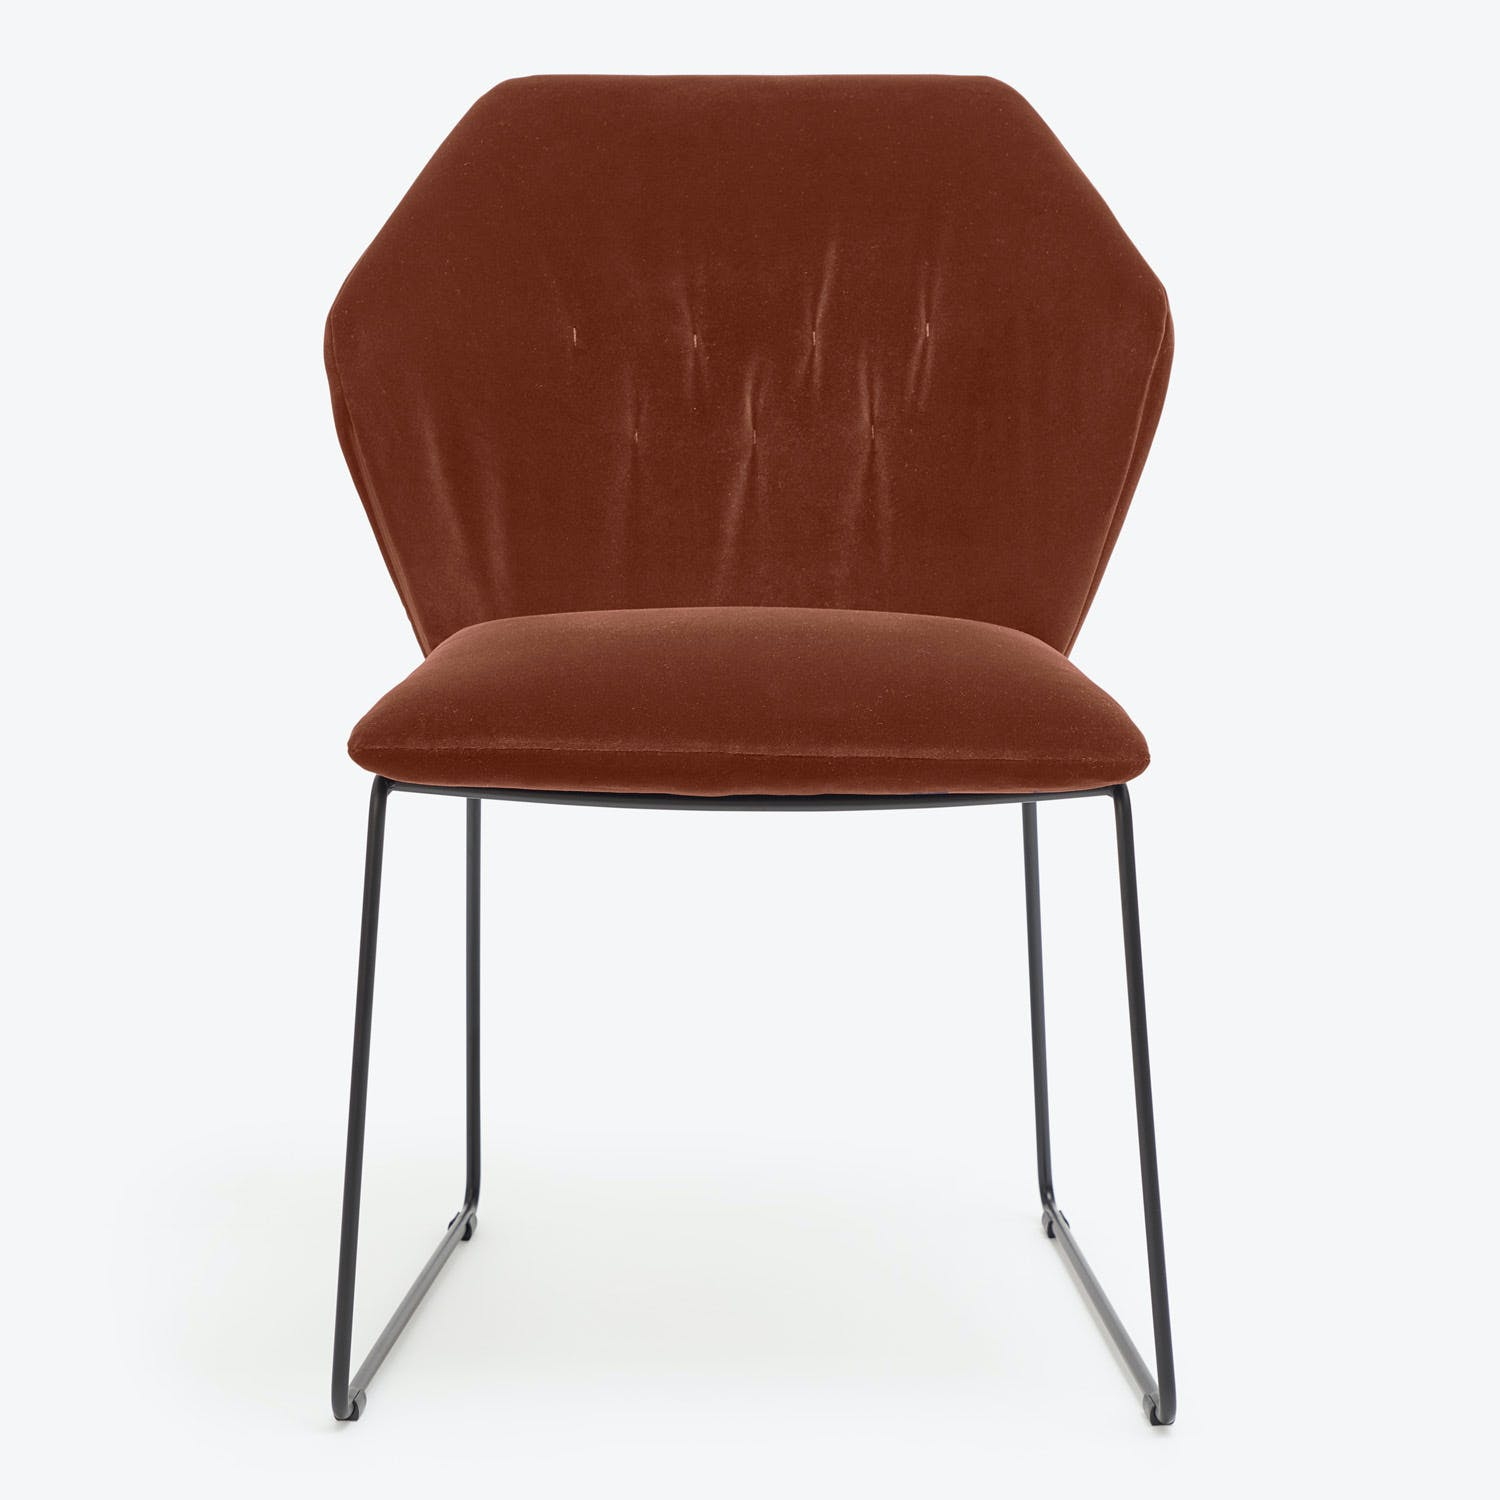 Product Image - New York Sedia Velvet Dining Chair